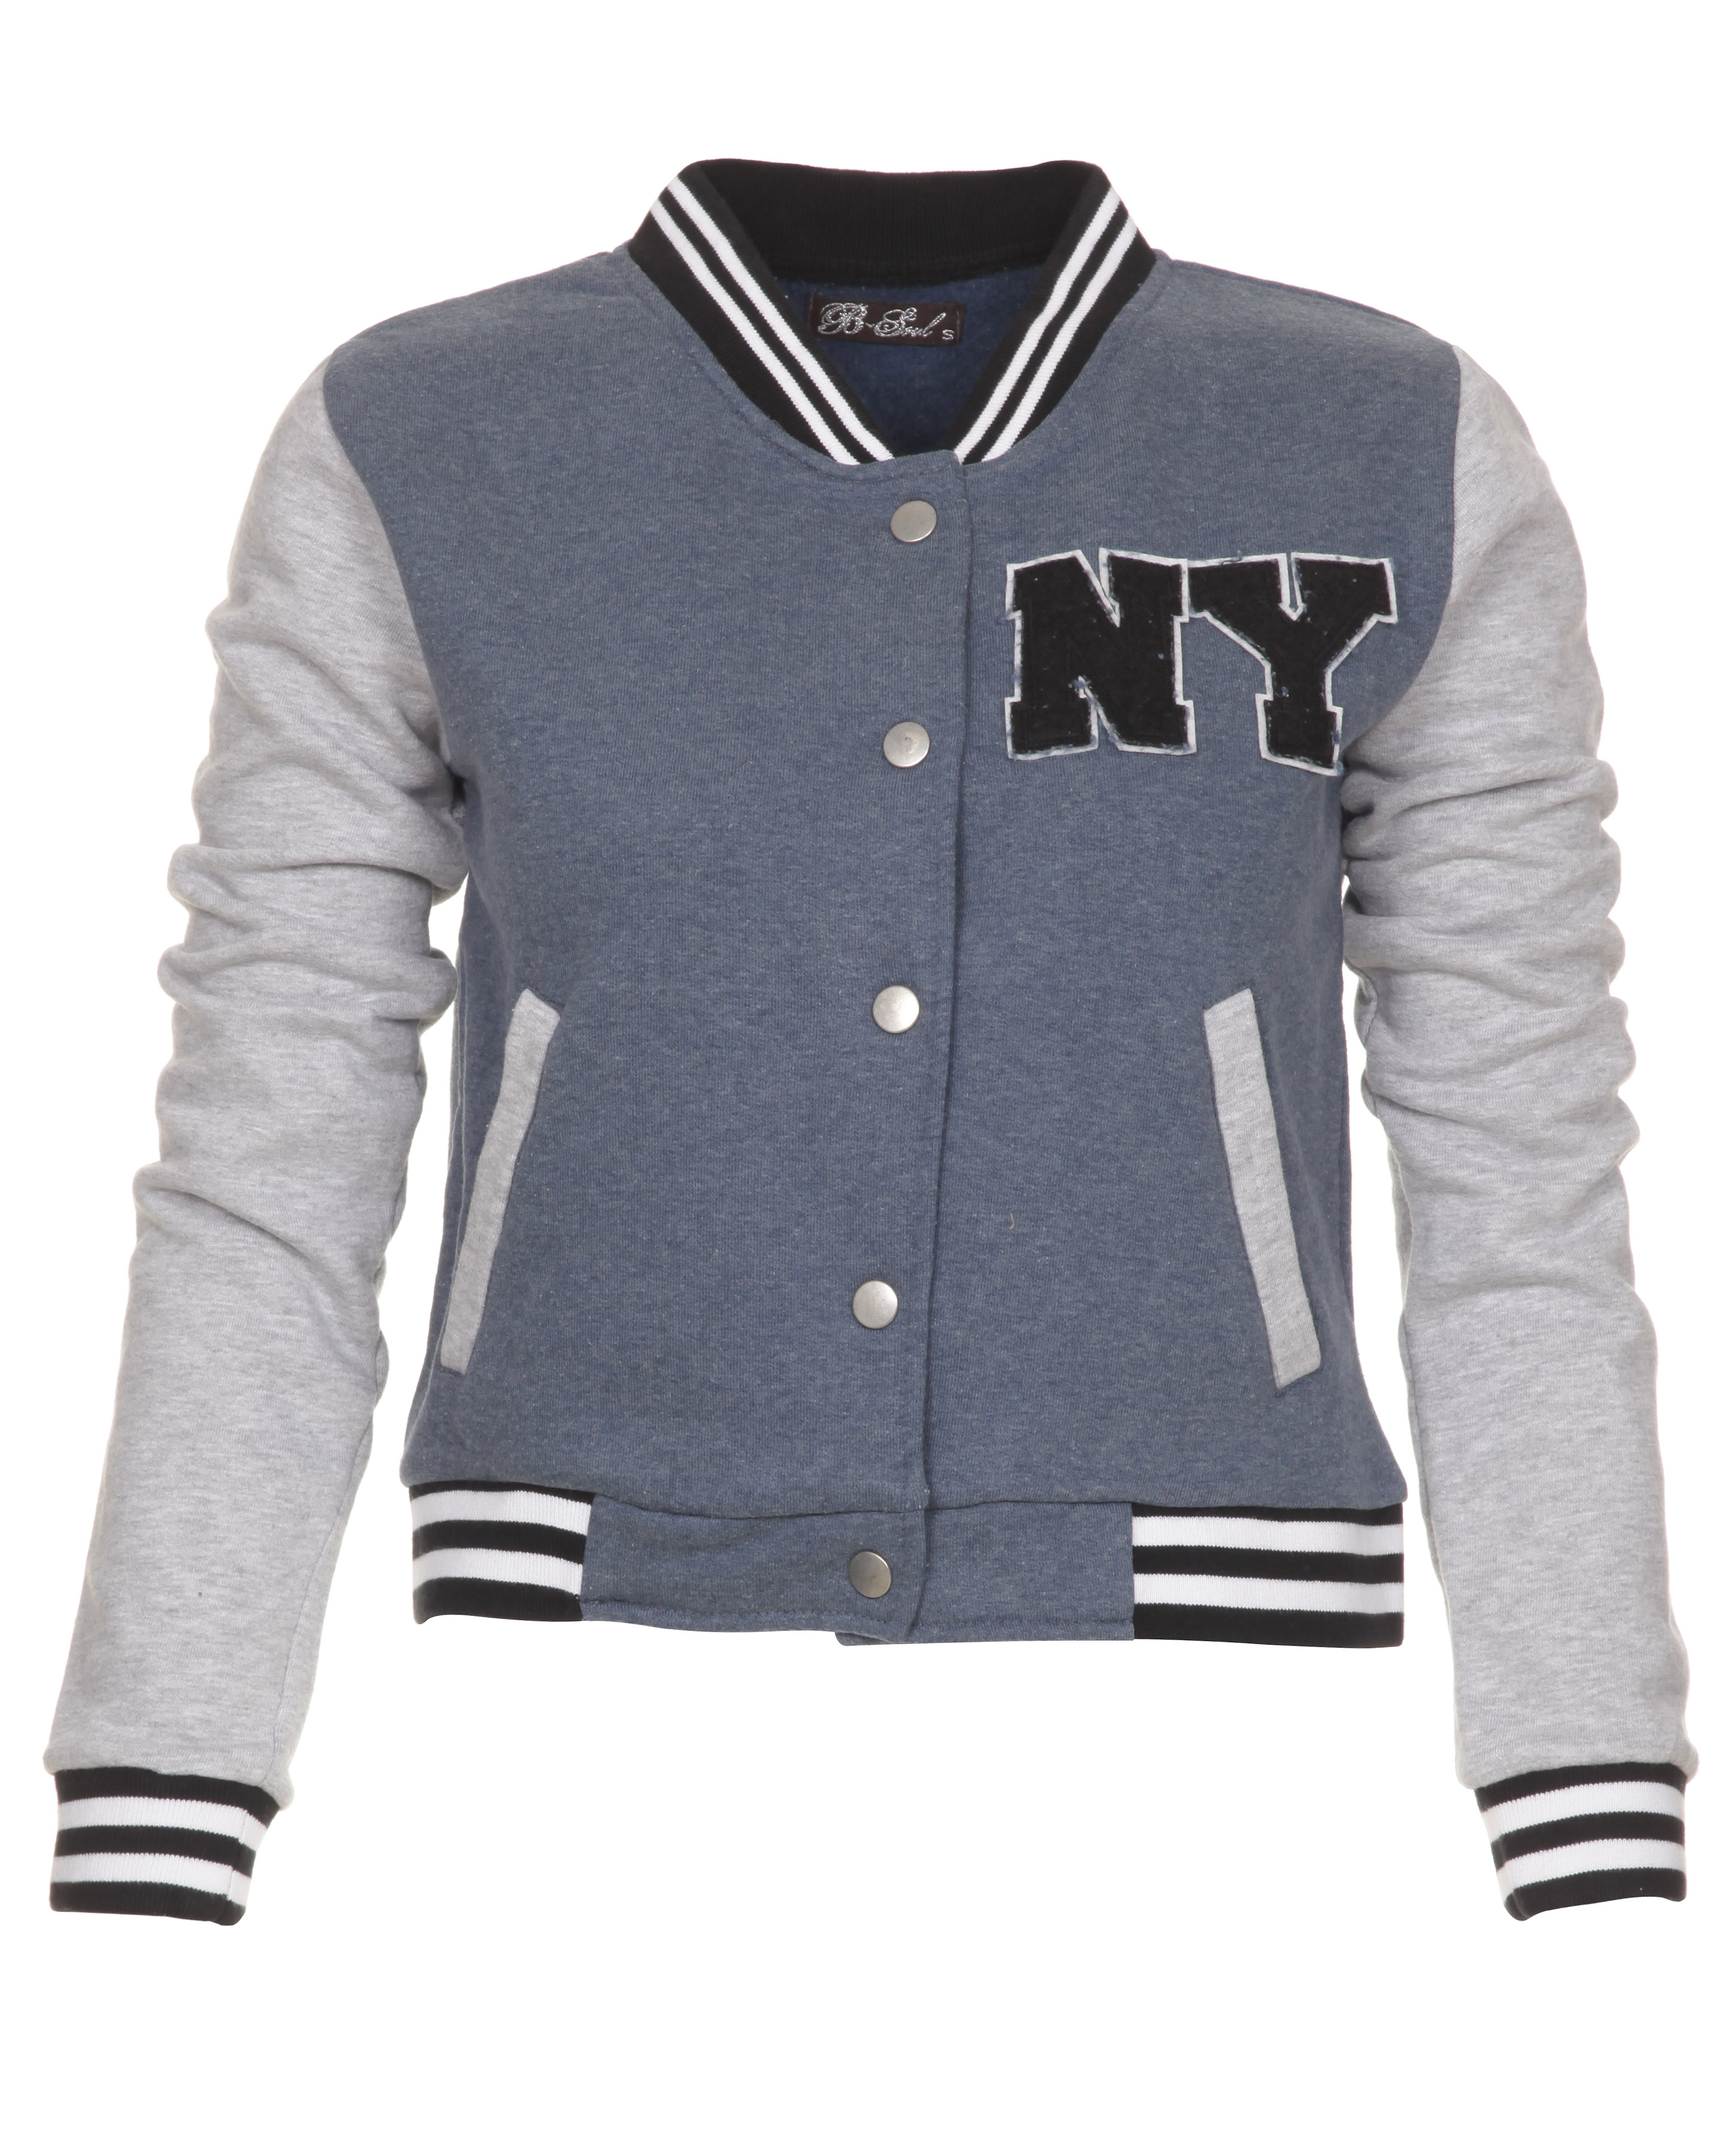 Ladies Baseball Jackets - Coat Nj